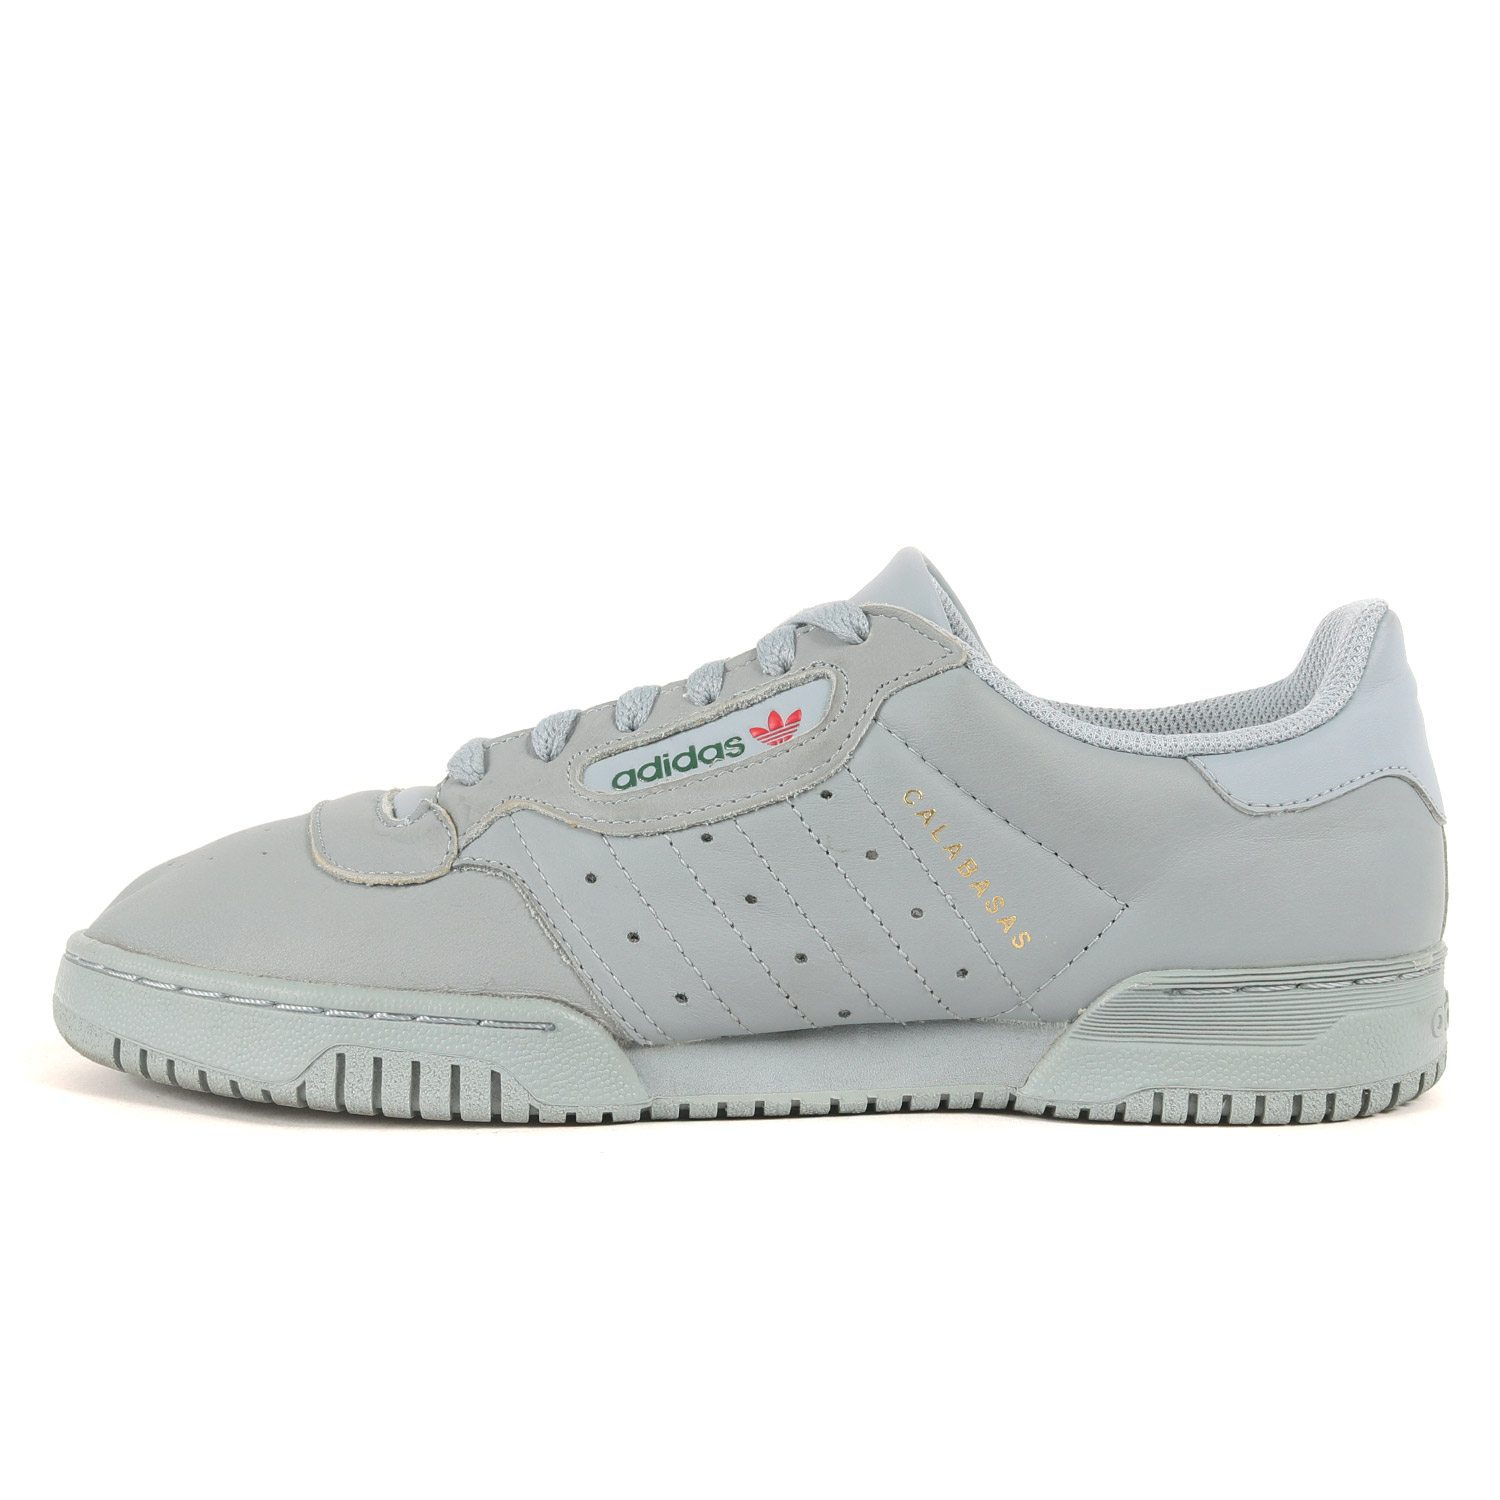 17AW YEEZY POWERPHASE (CG6422)